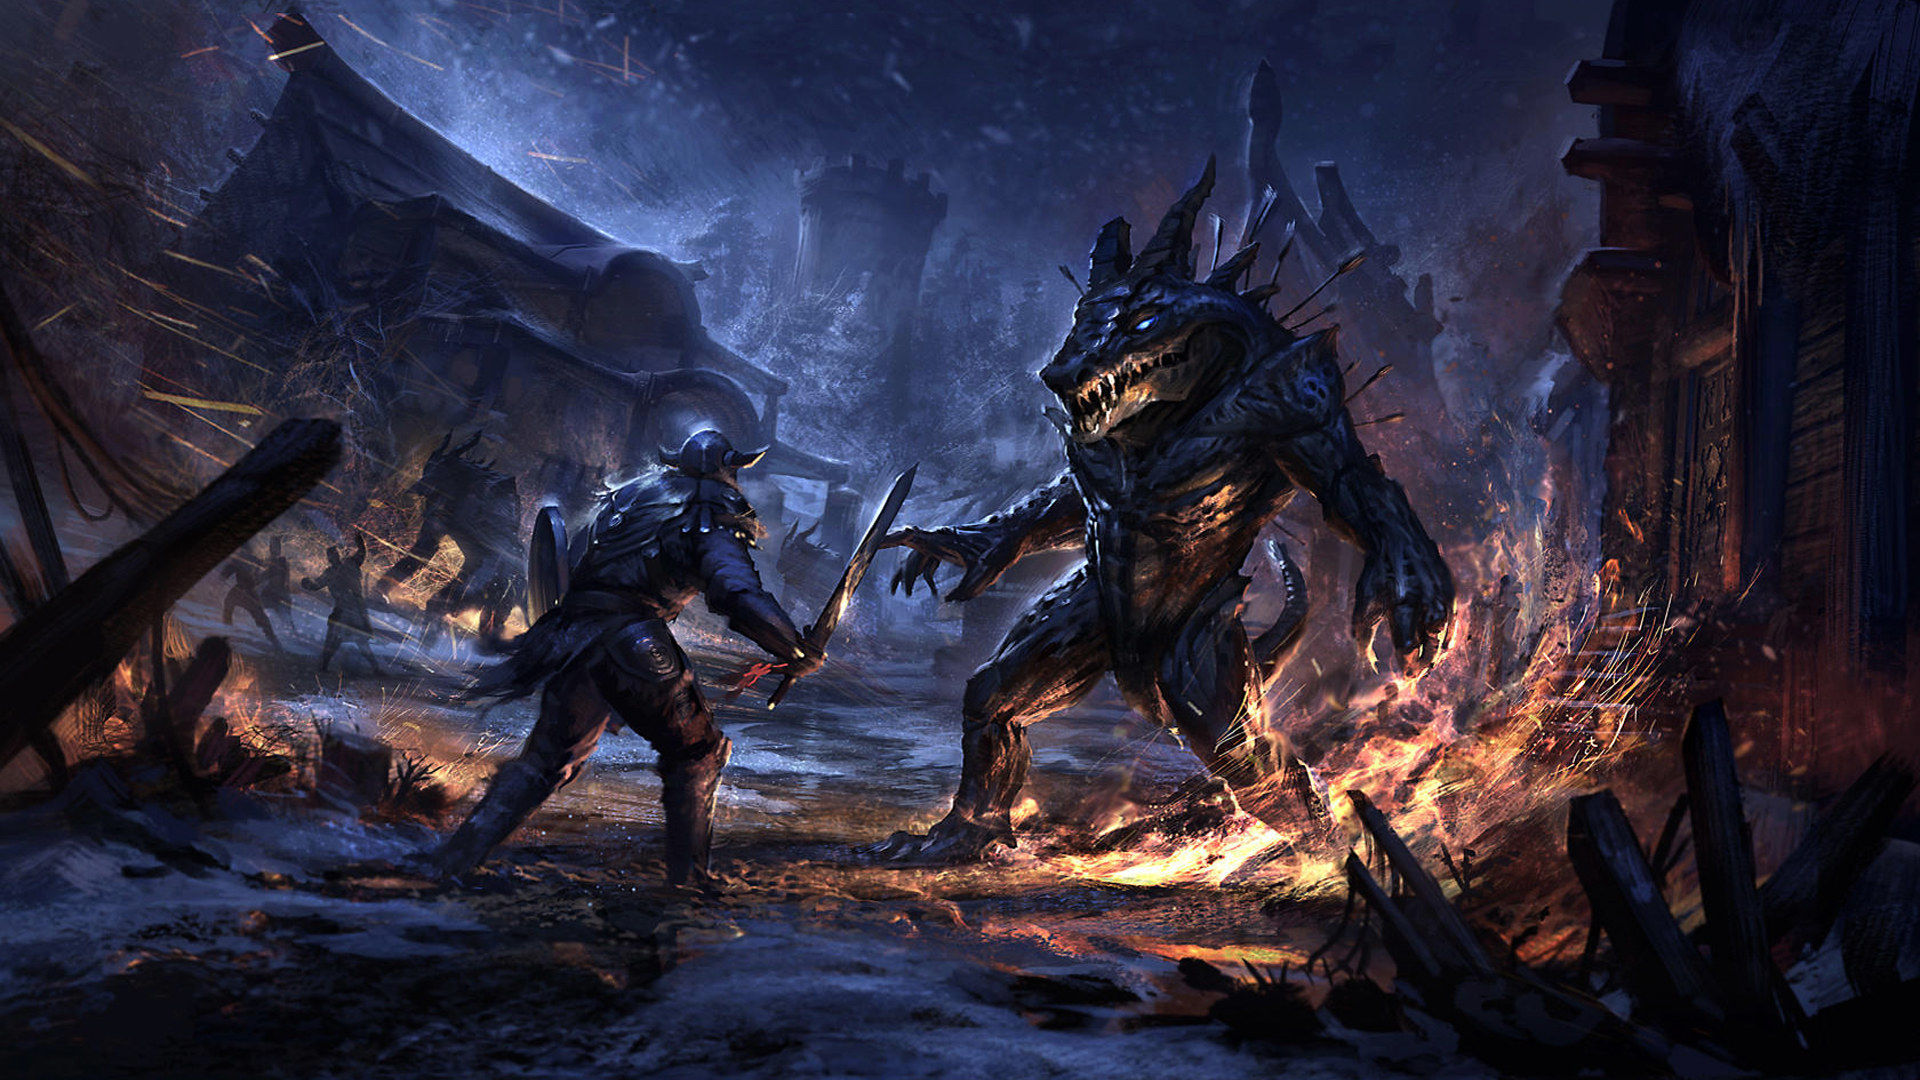 47 Elder Scrolls Online Iphone Wallpaper On Wallpapersafari